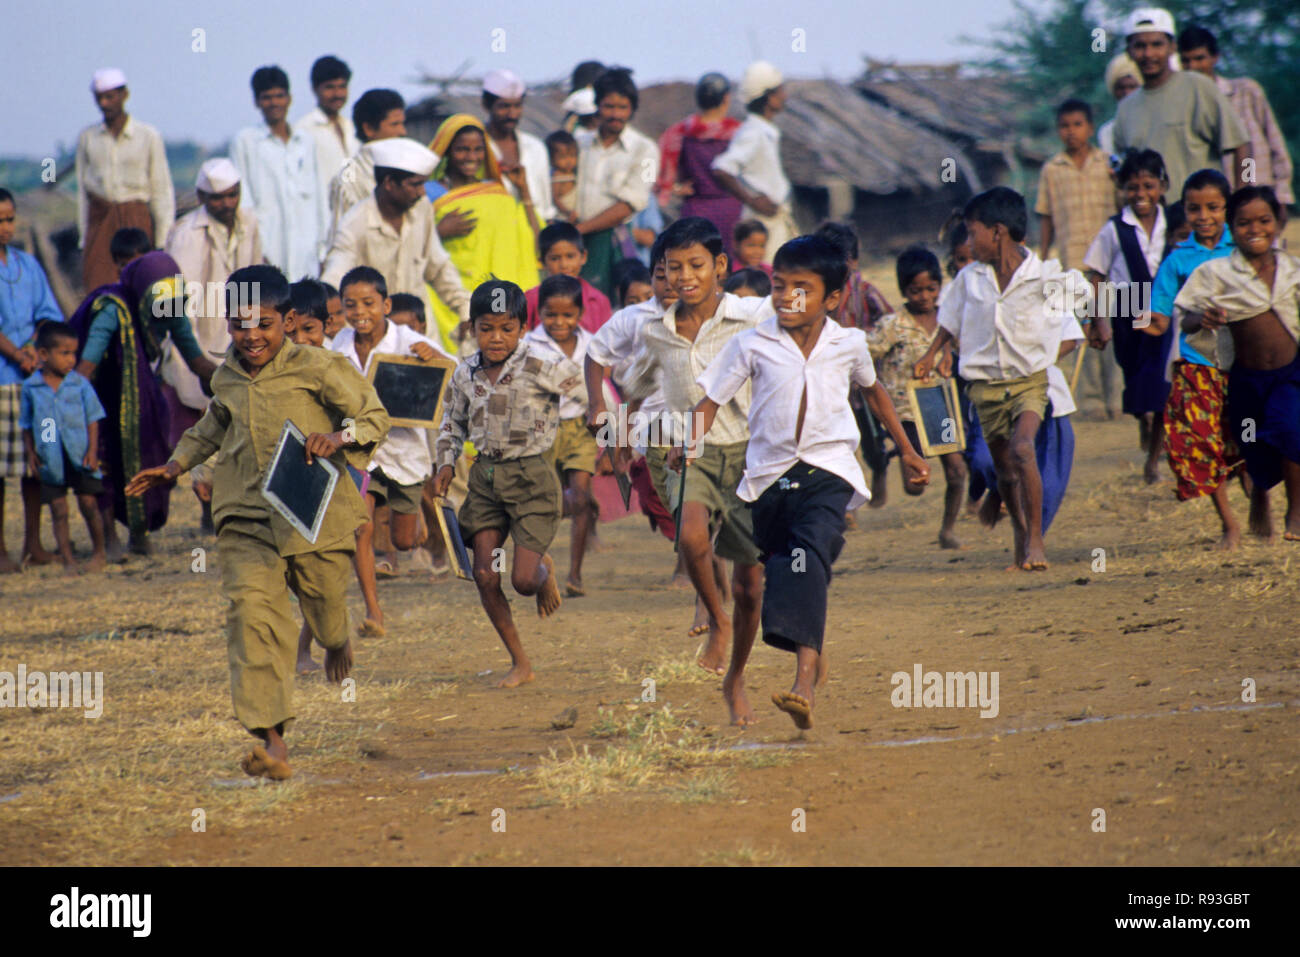 children running from school, kala pani, dhule, maharashtra, india - Stock Image